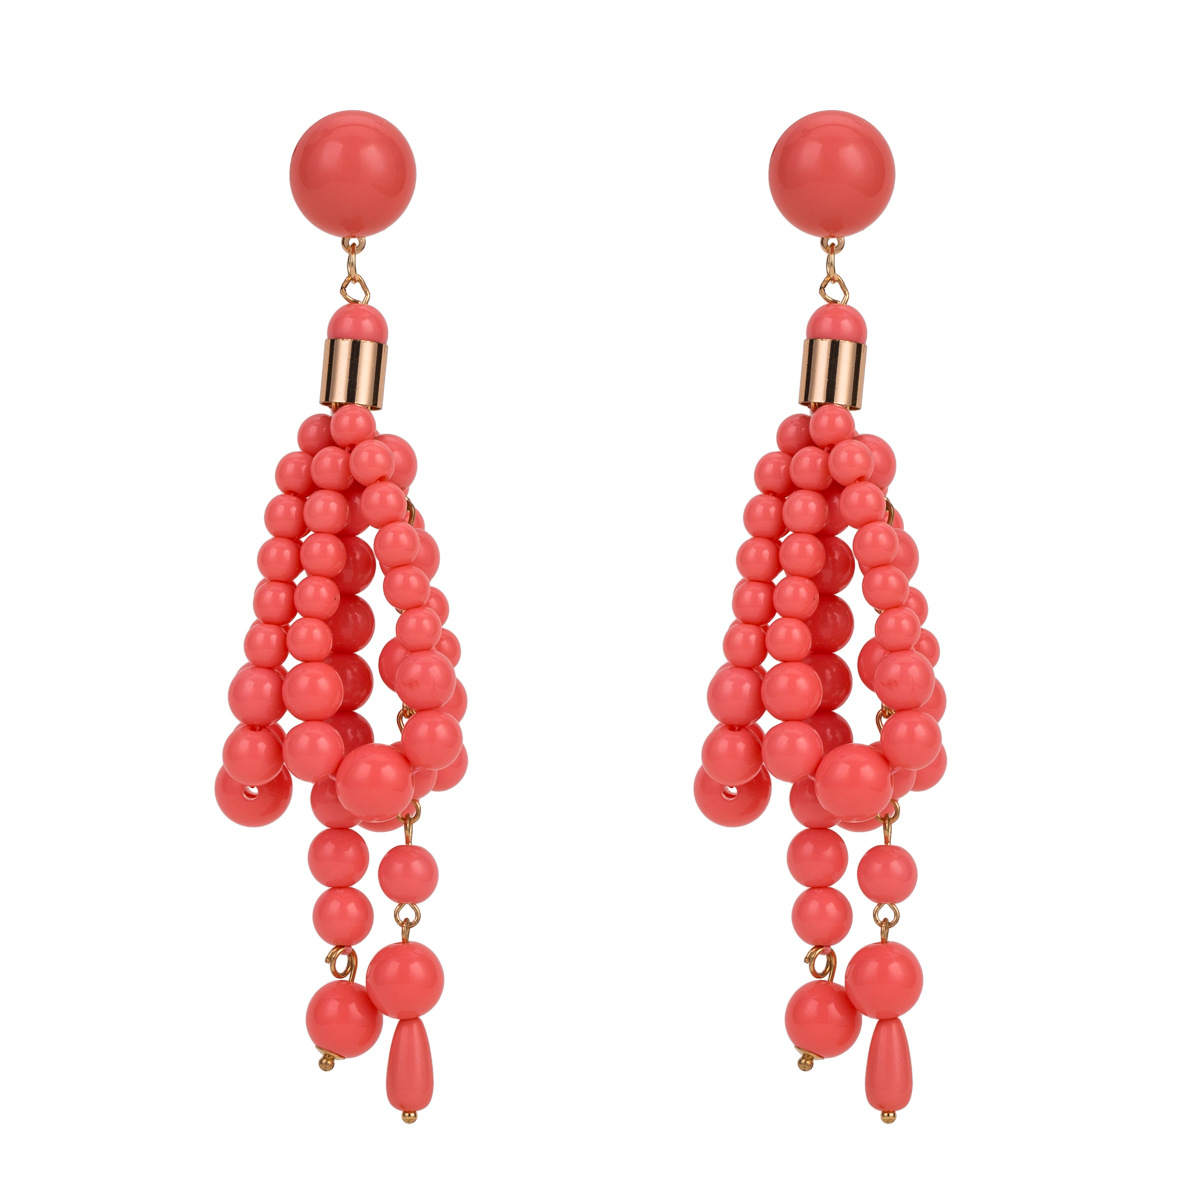 Alloy Fashion Geometric earring(Red yellow) NHJE1633-Red-yellow